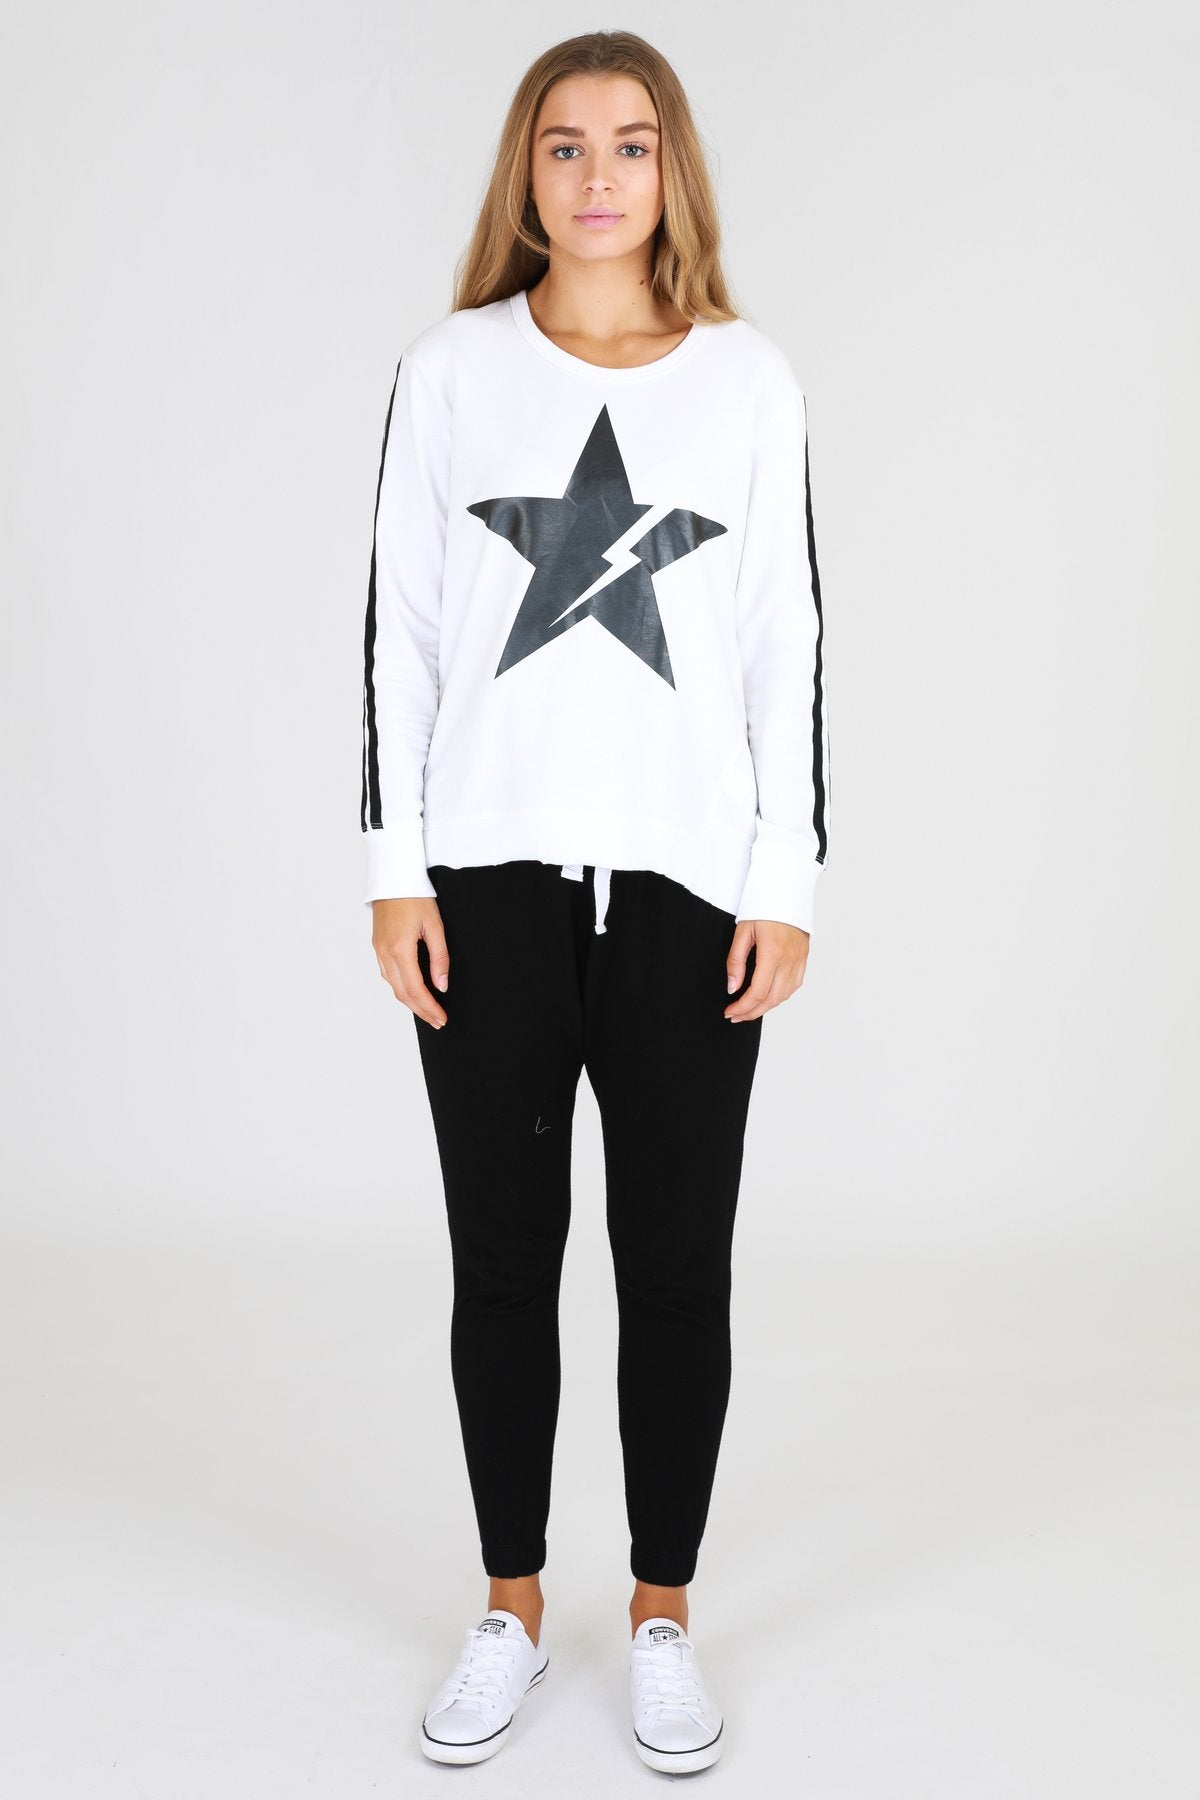 Thunder Star Sweater